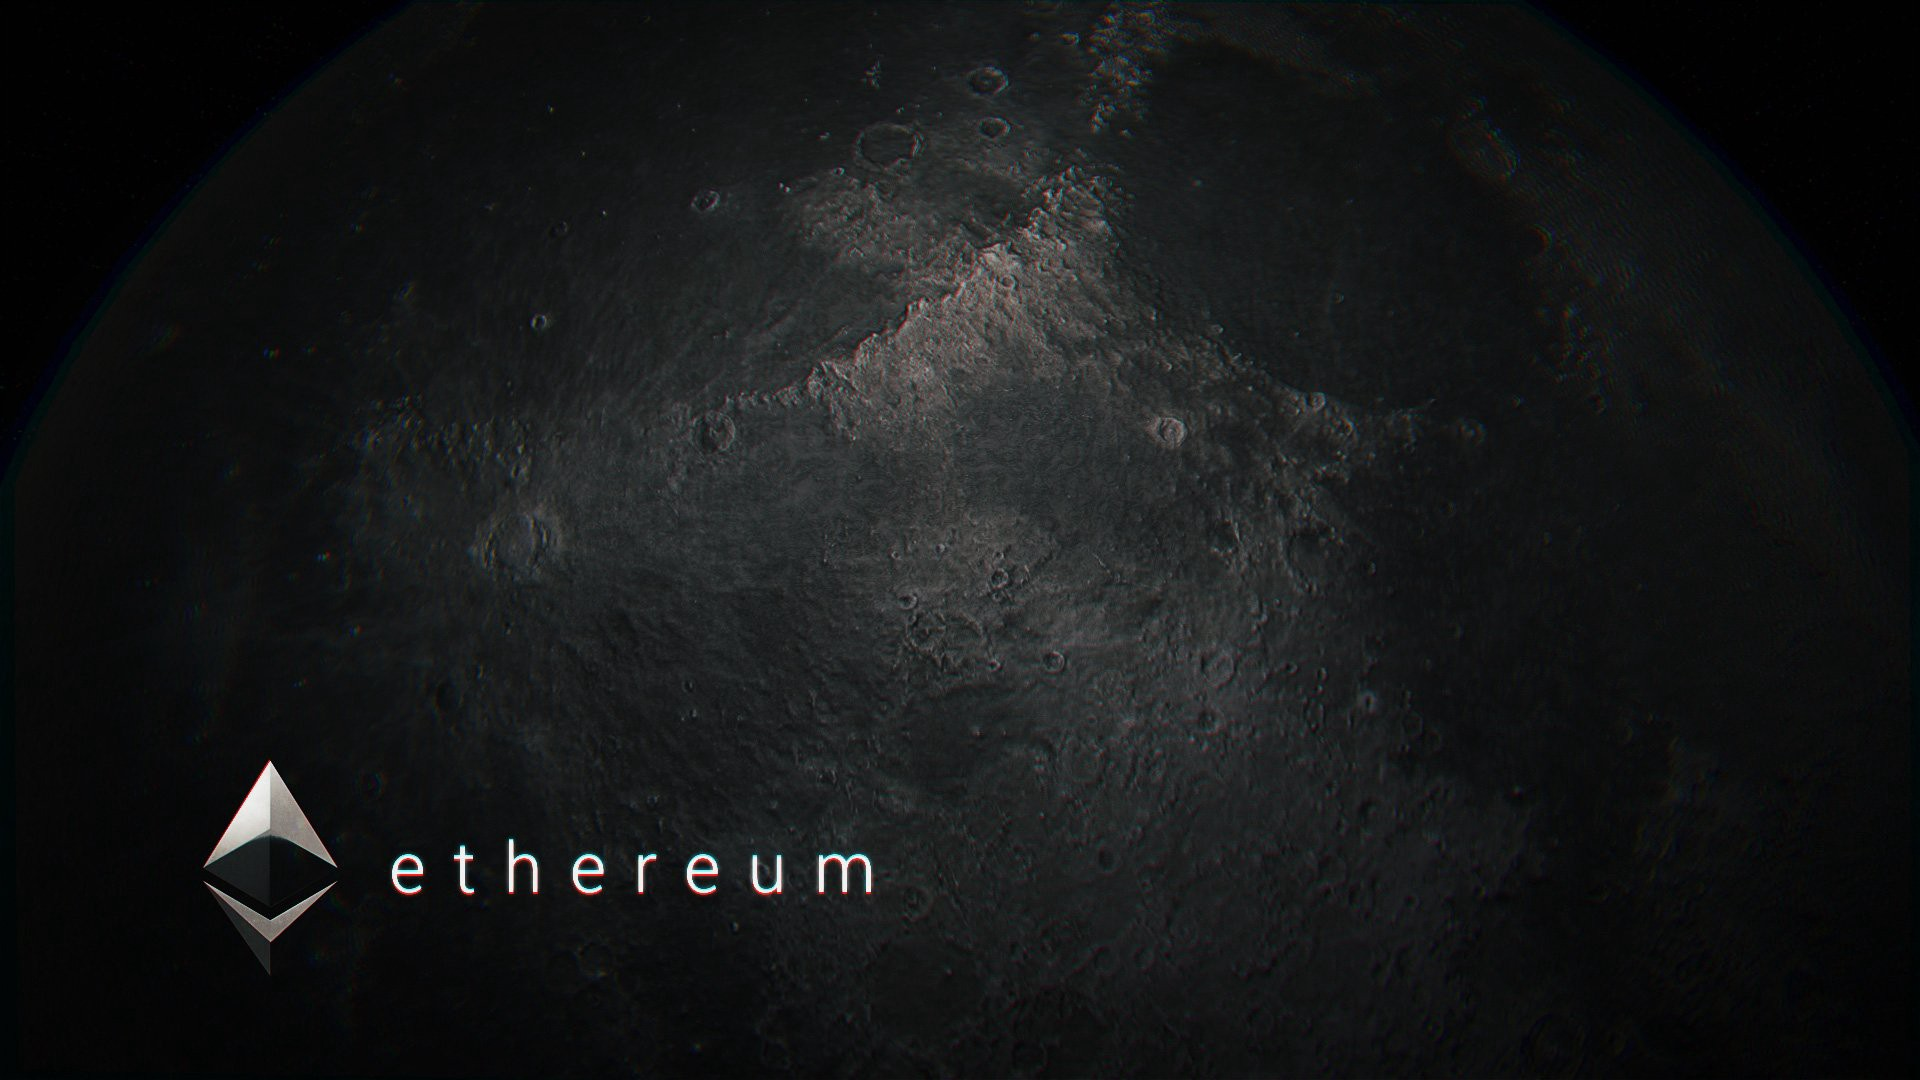 What ethereum means to me   By 1920x1080